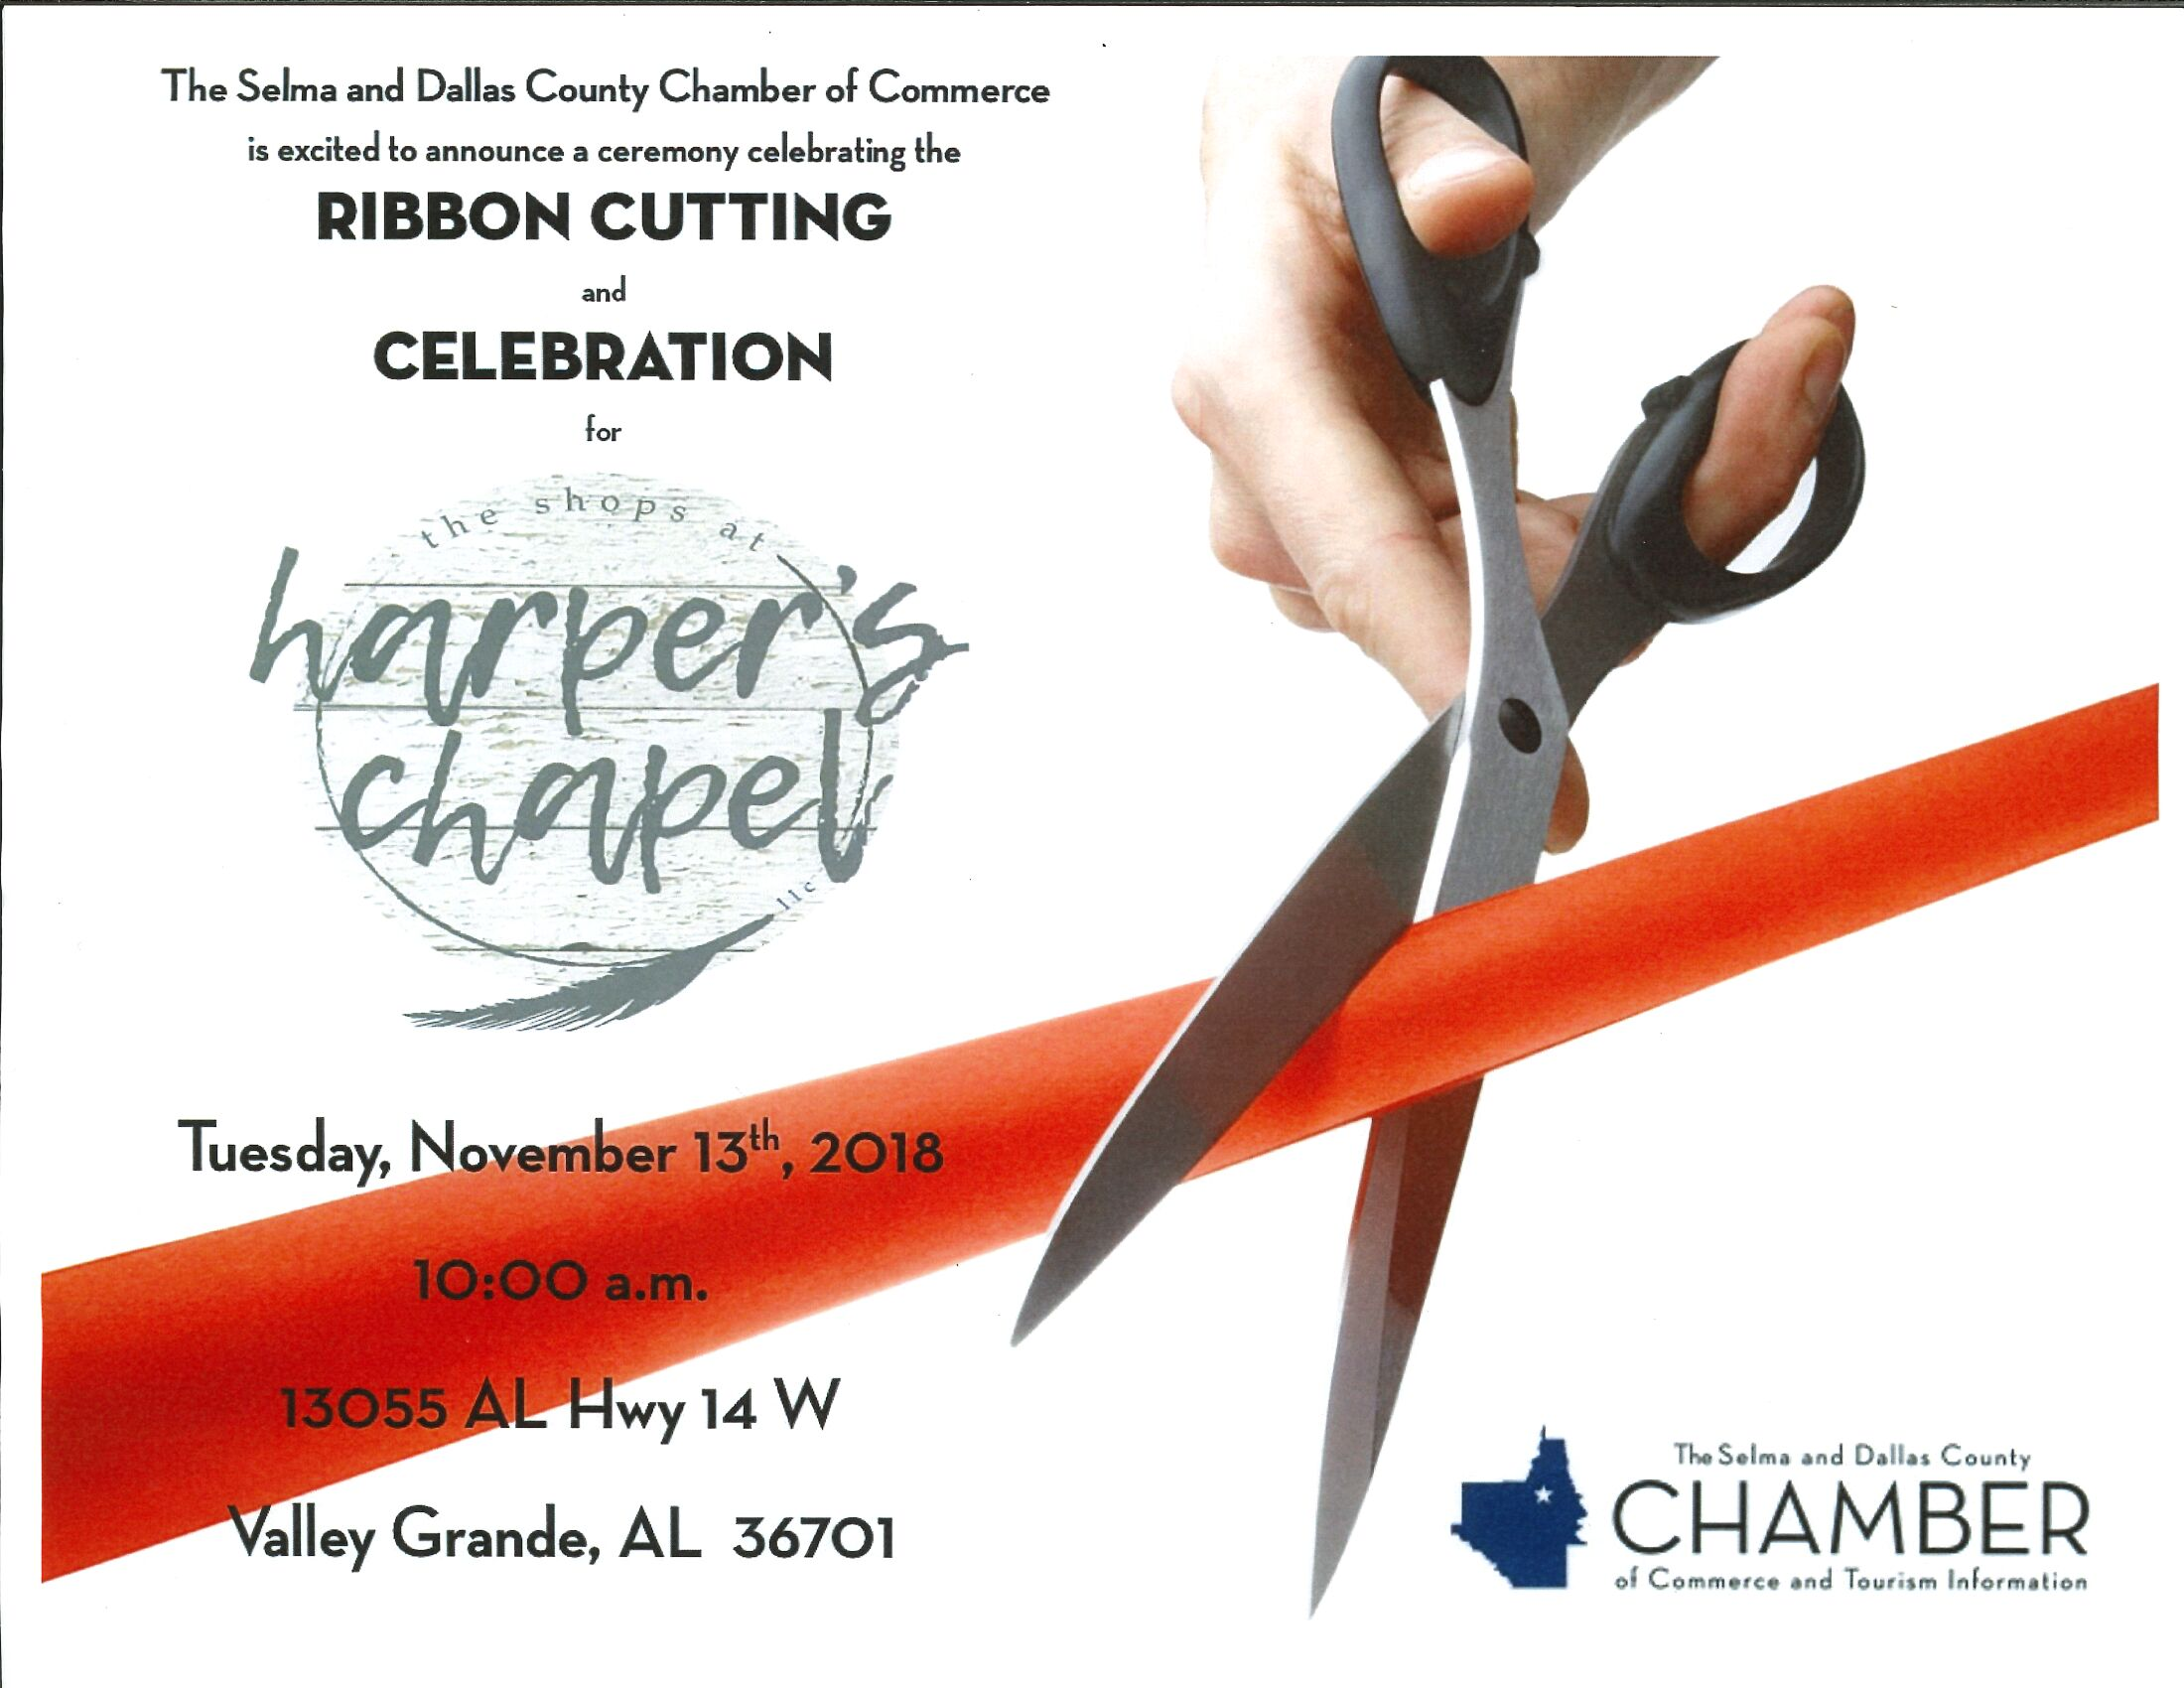 Harpers Chapel Ribbon Cutting